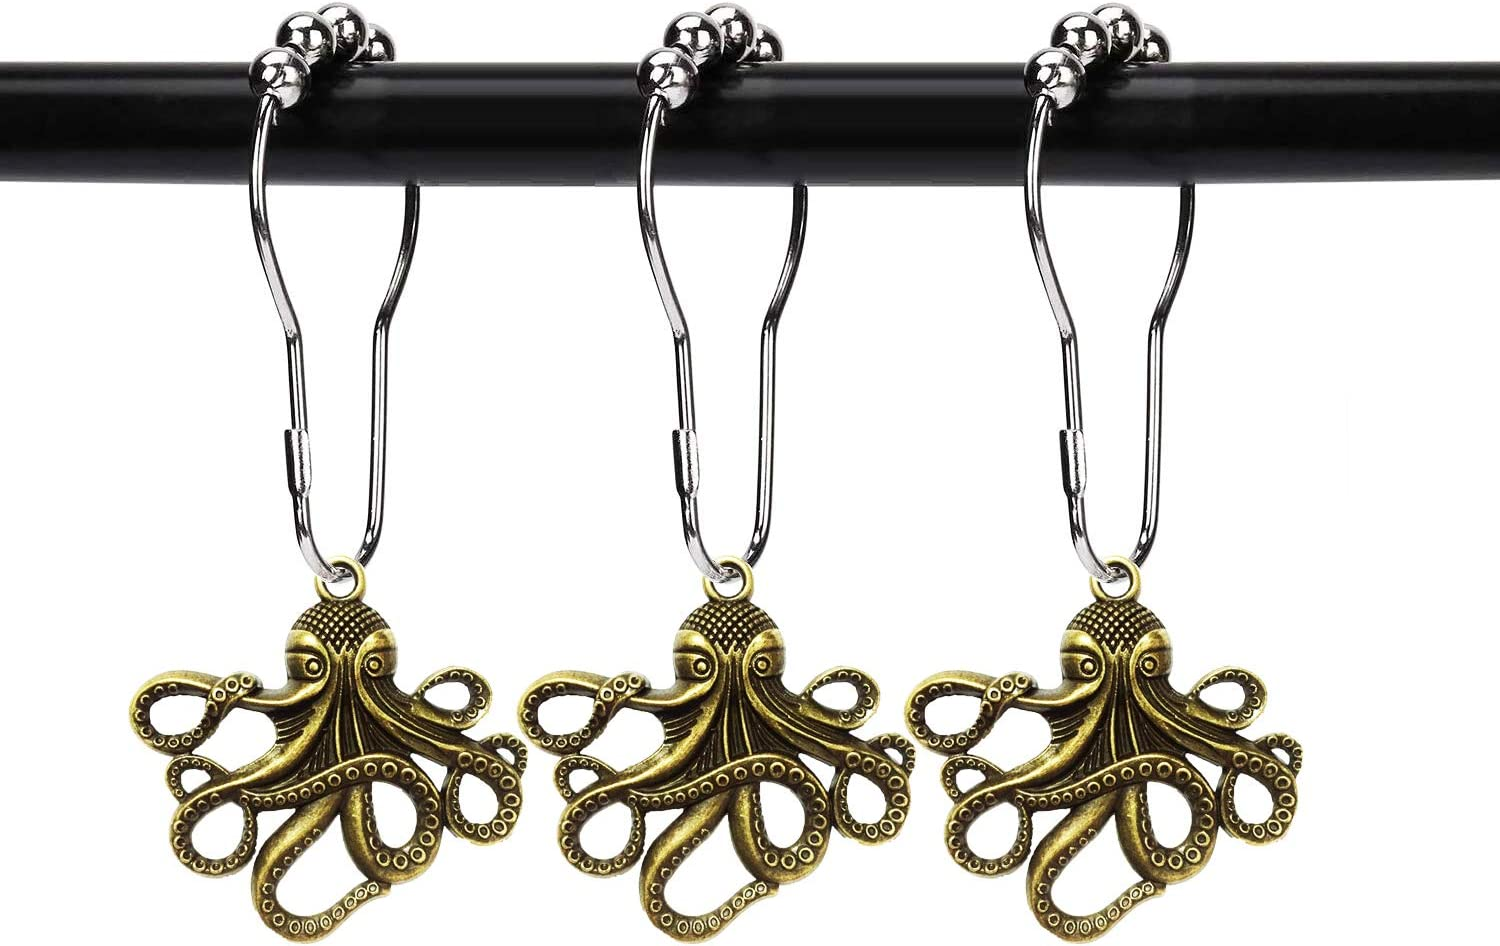 ZILucky Set of 12 Octopus Shower Curtain Hooks Decorative Home Bathroom Squid Sea Creature Beast Stainless Steel Rustproof Brushed Nickel Rings with Octopus Decorative Accessories (Bronze)